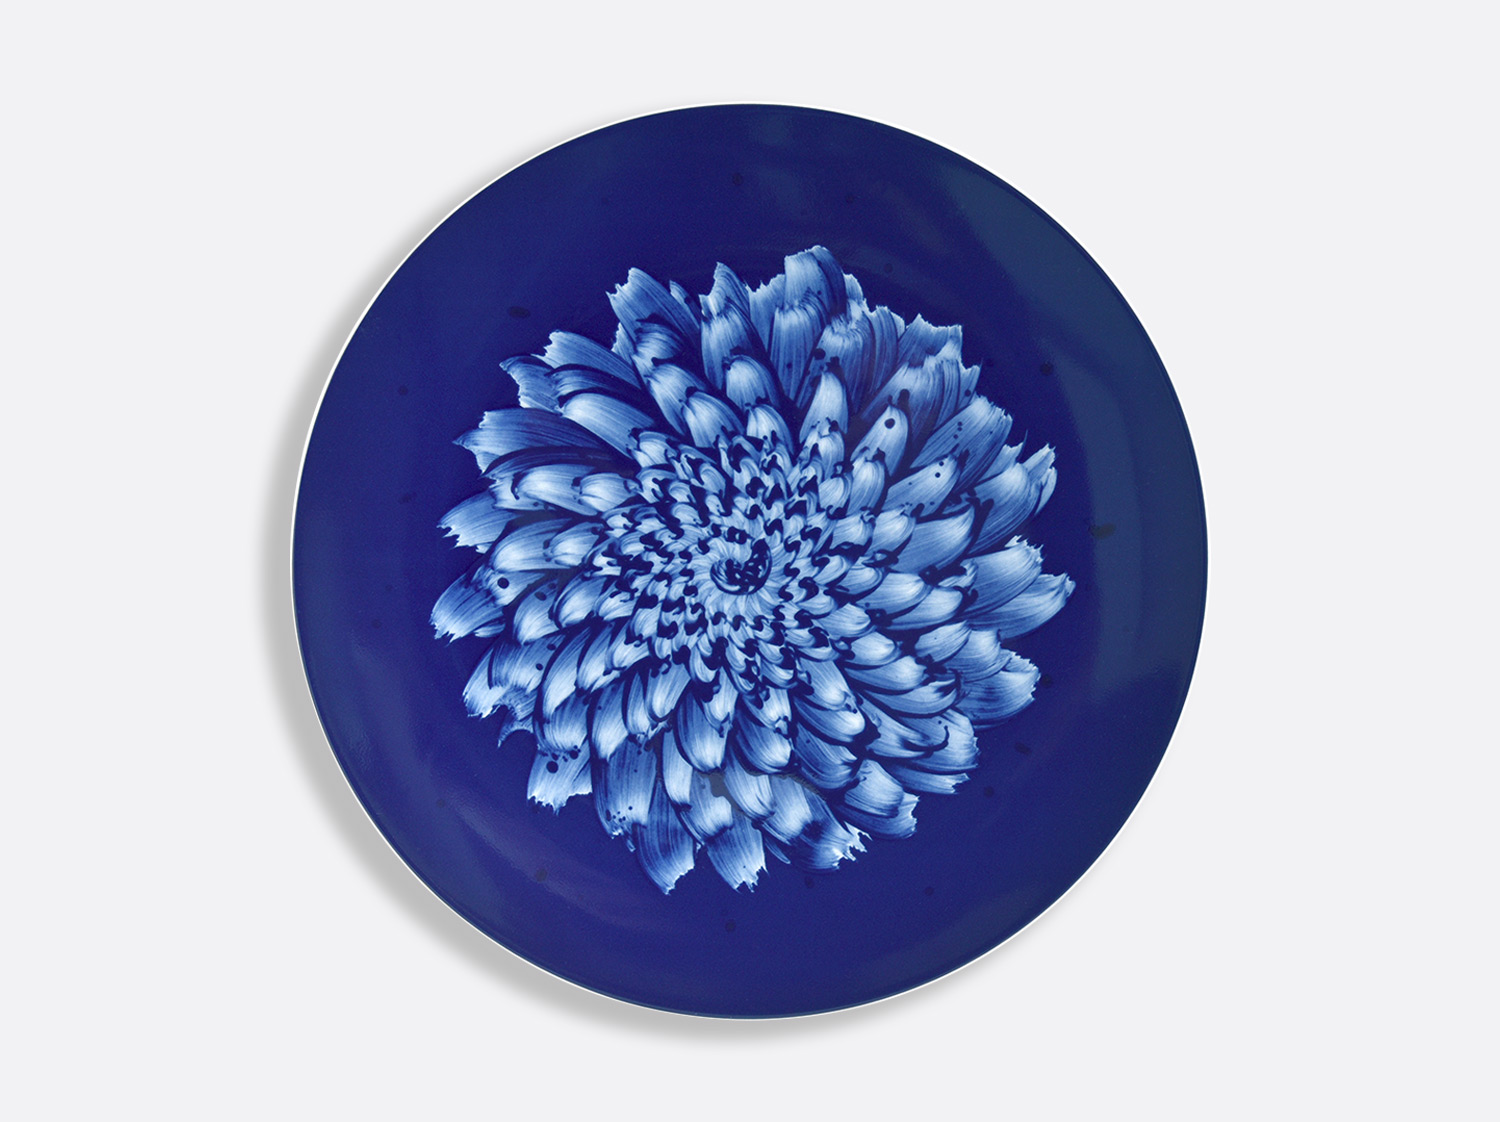 Assiette de présentation ultra plate 31 cm en porcelaine de la collection IN BLOOM - Zemer Peled Bernardaud